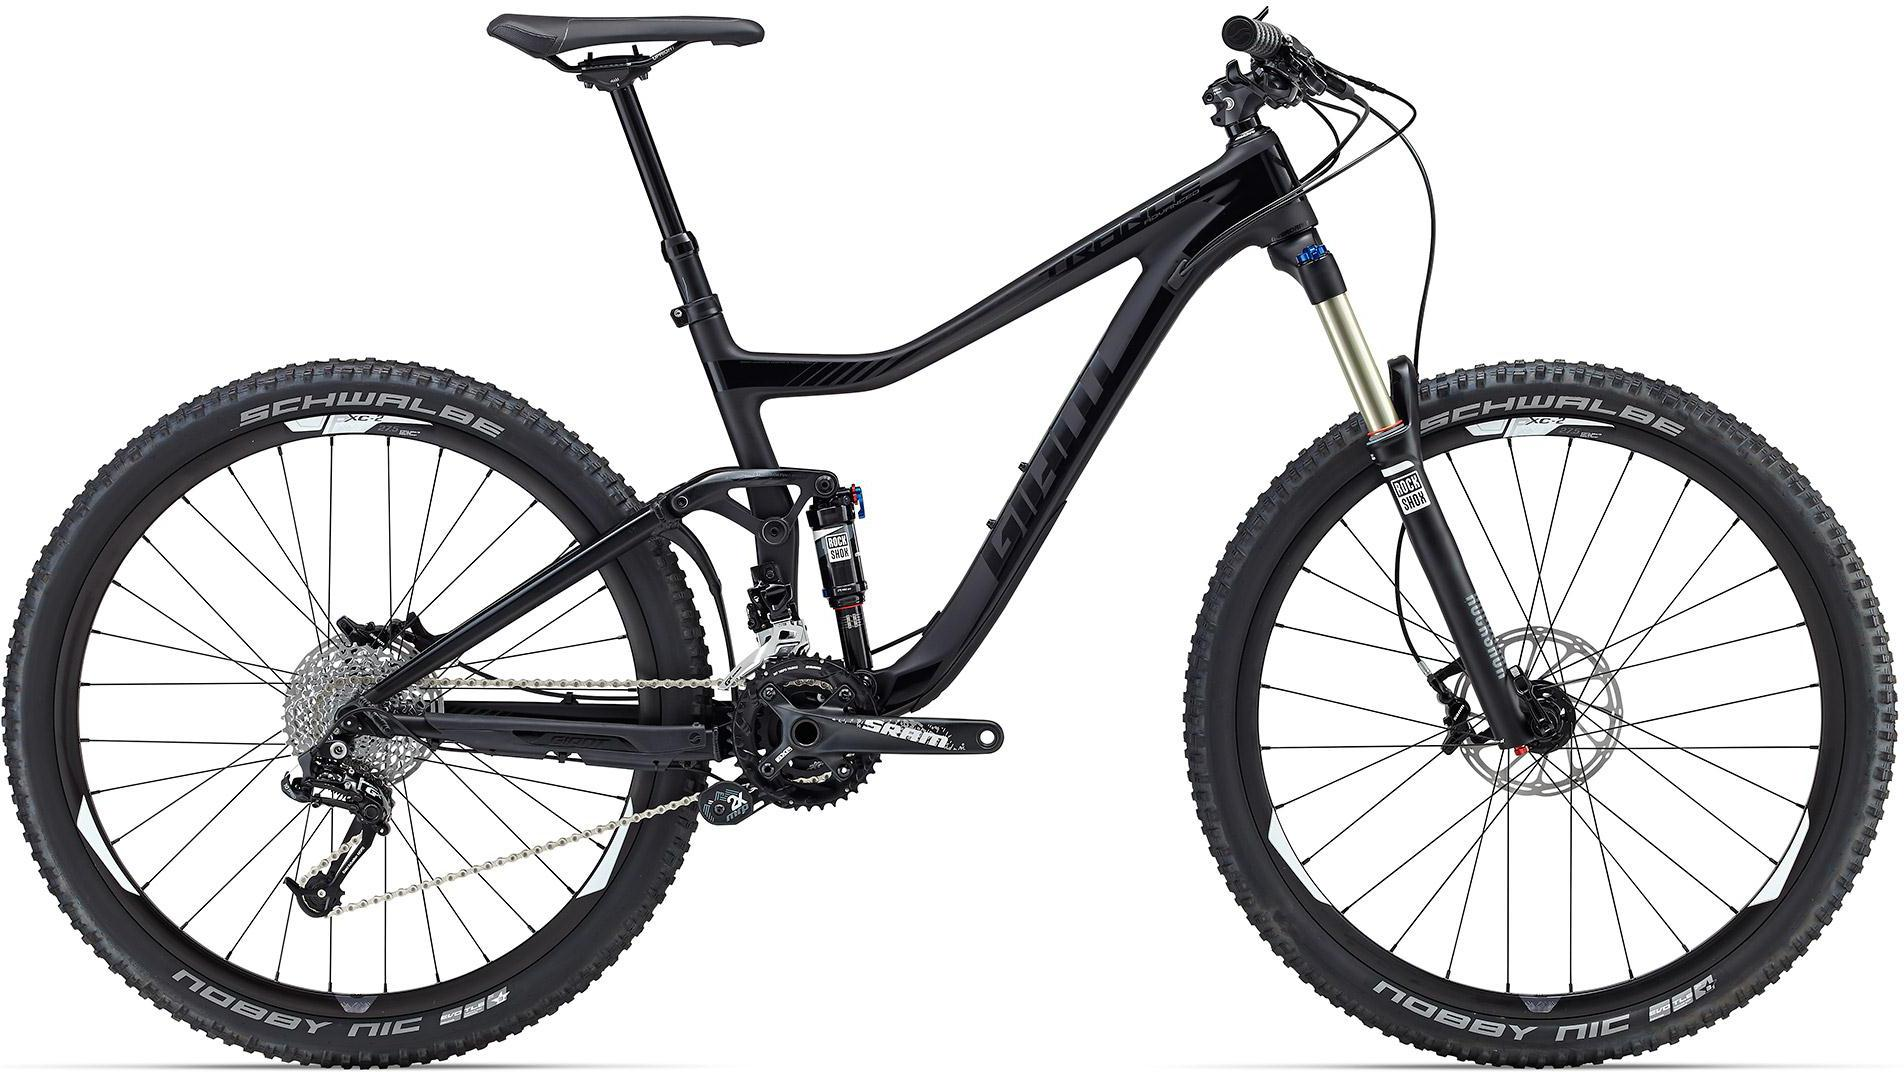 Giant 2016 Trance Advanced 27.5 2 in Tree Fort Bikes All